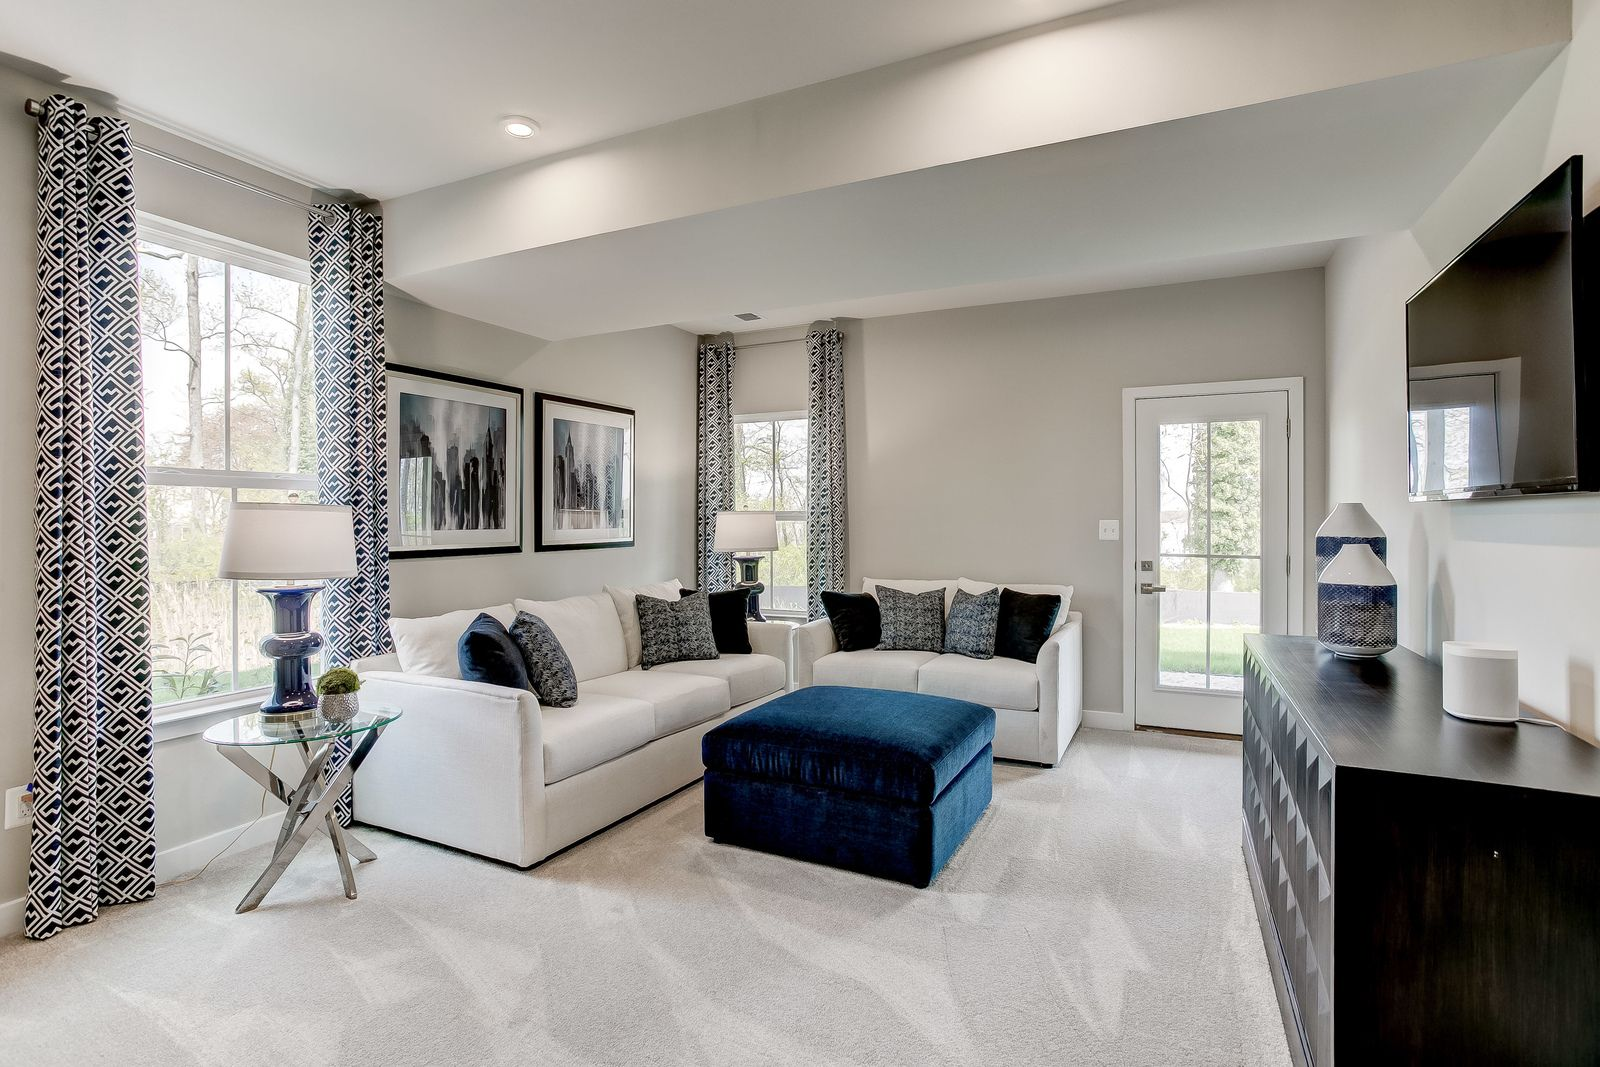 Living Area featured in the McPherson - 3 Story By Ryan Homes in Washington, MD